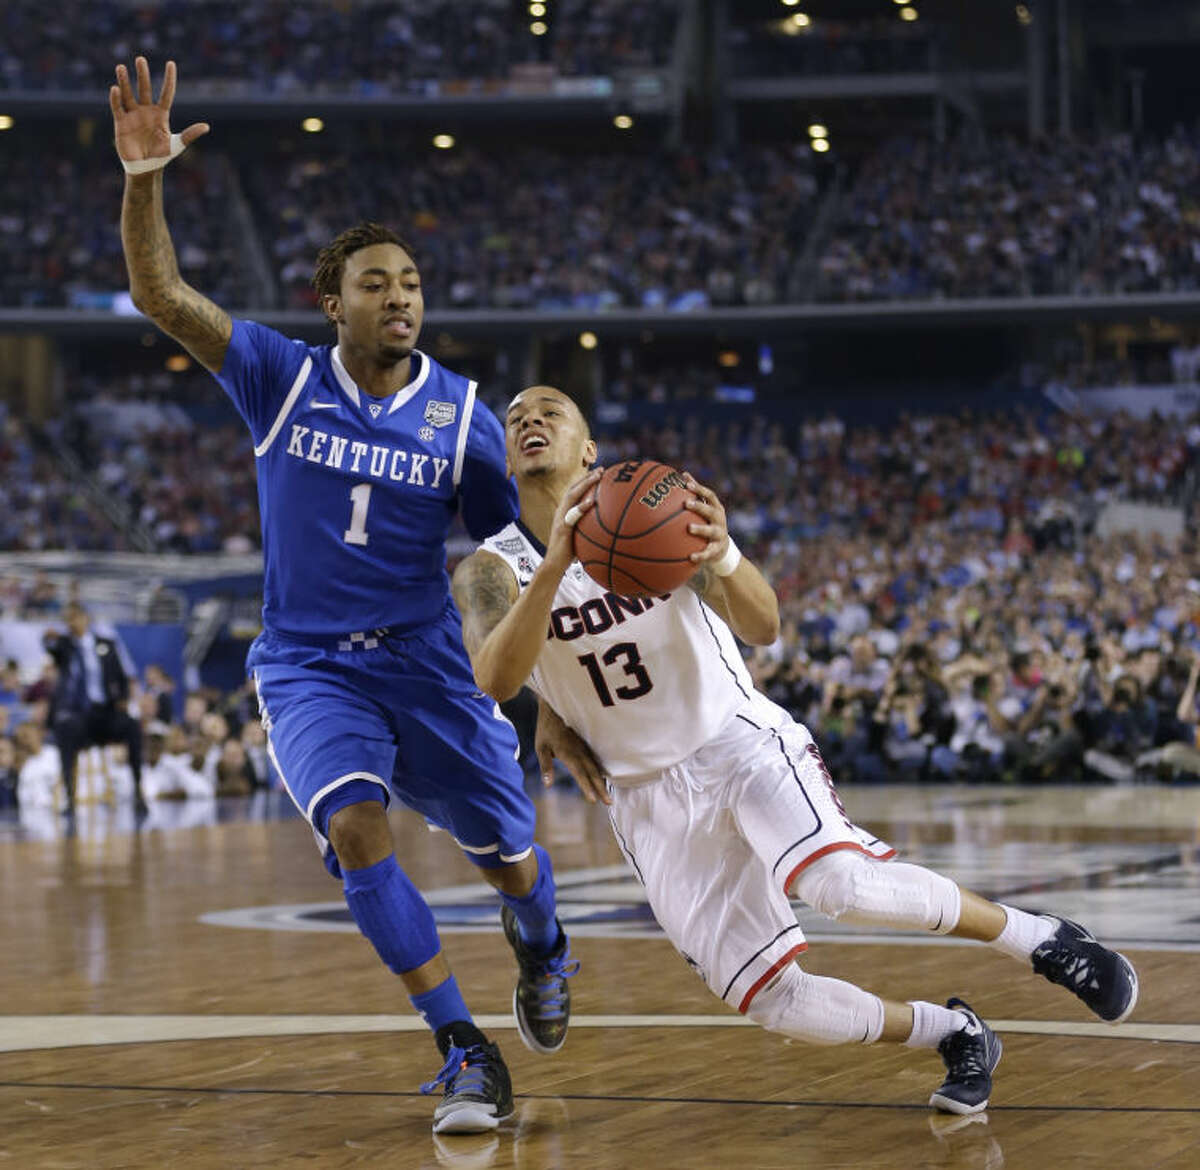 Connecticut guard Shabazz Napier, right, drives past Kentucky guard James Young during the first half of the NCAA Final Four tournament college basketball championship game Monday, April 7, 2014, in Arlington, Texas. (AP Photo/David J. Phillip)